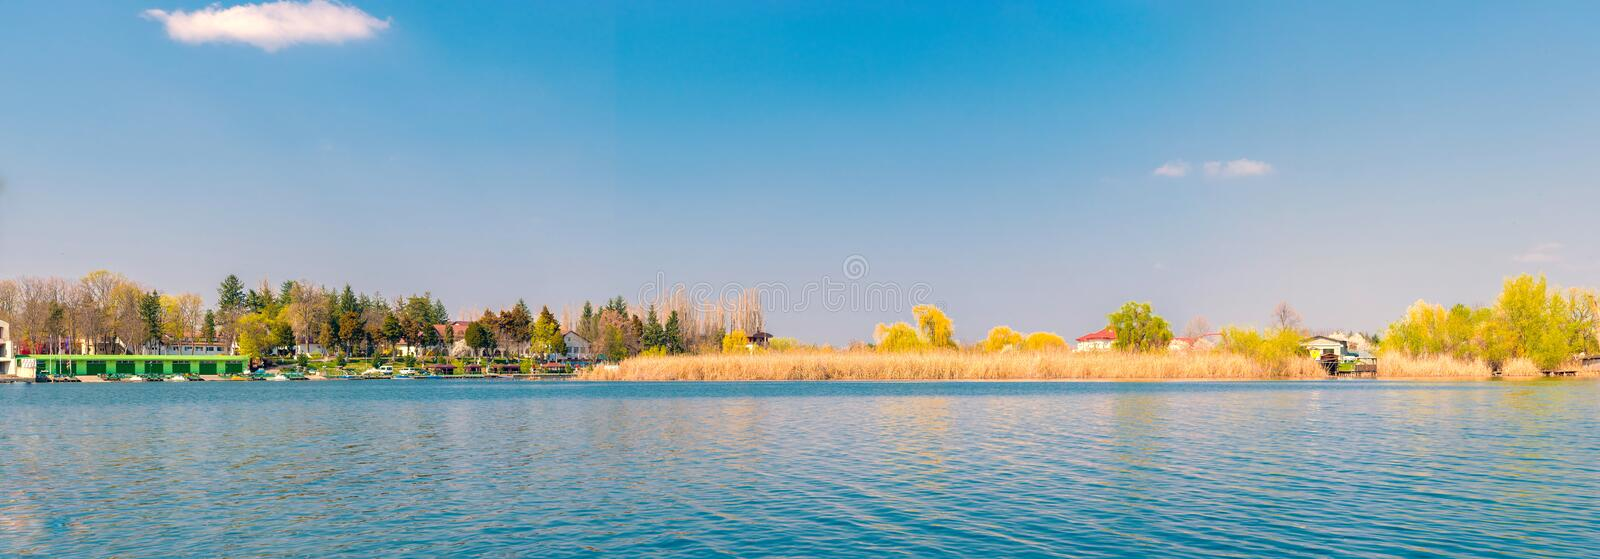 Panorama showing lake water, reed island and boat peer wit copy space royalty free stock photo